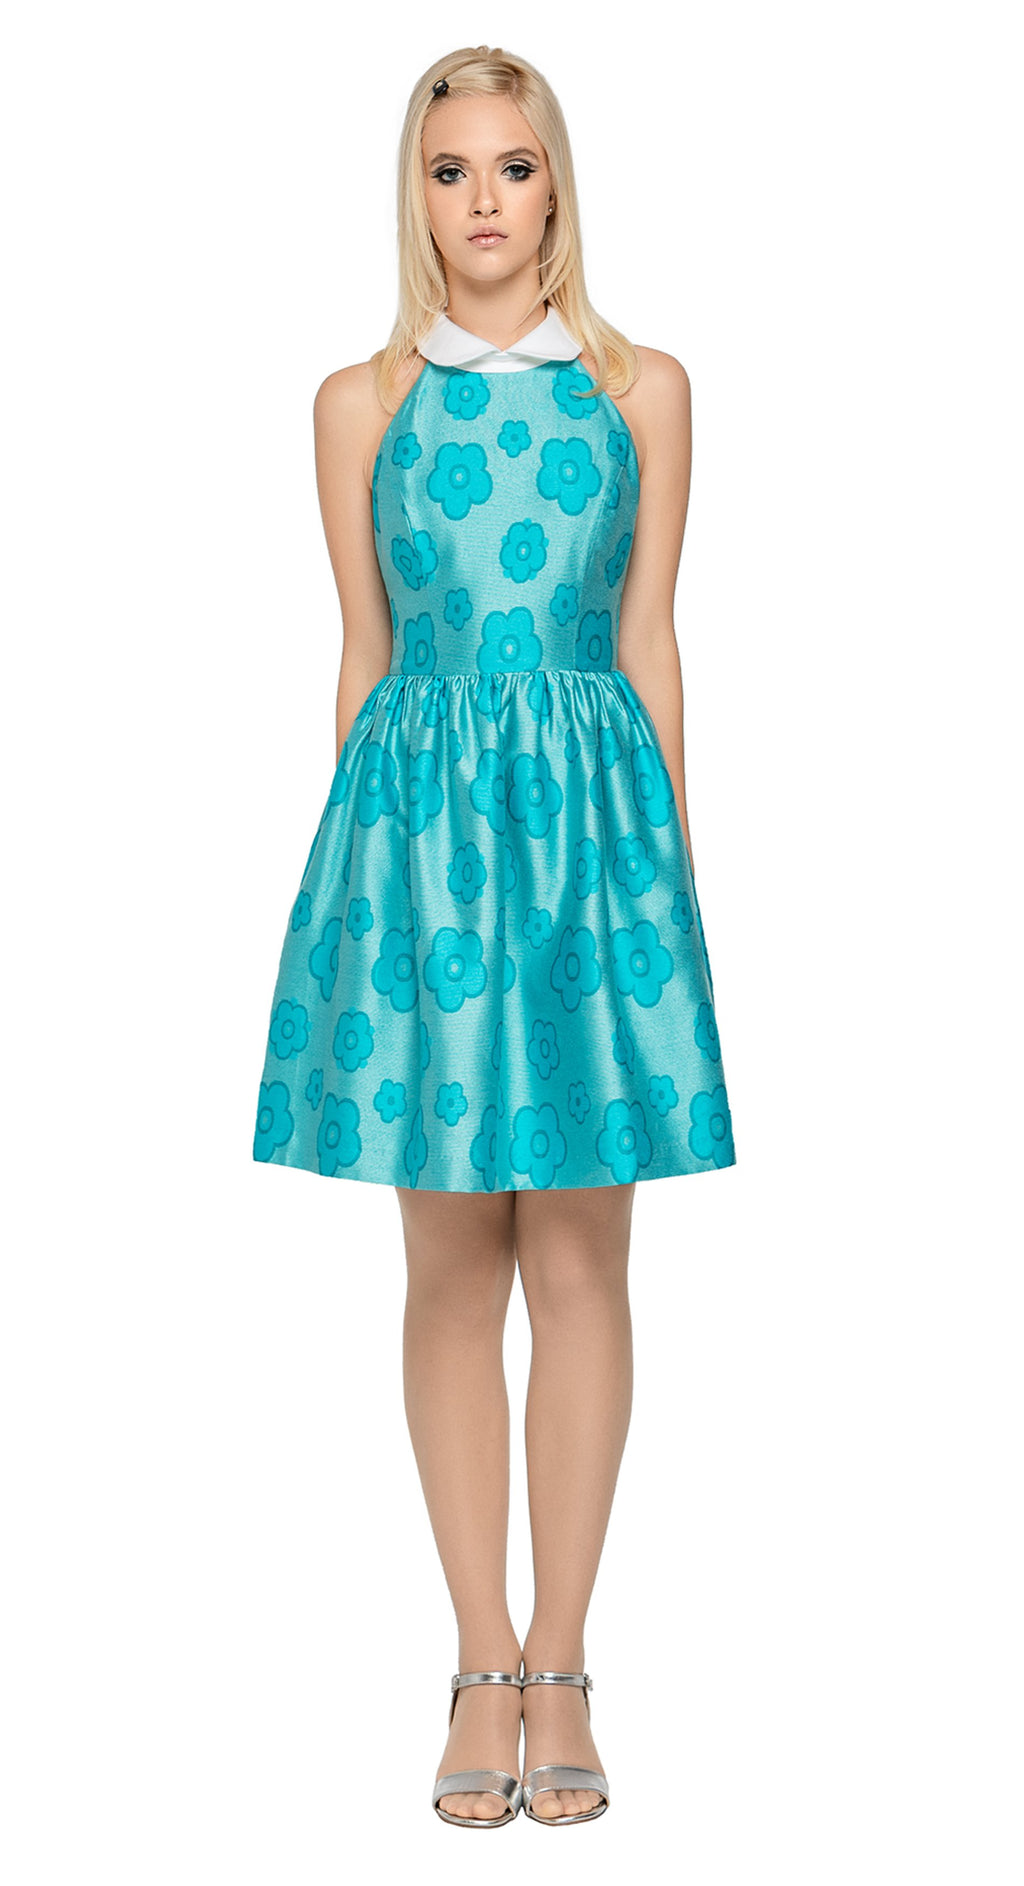 A retro style dress with gathered skirt and fitted bodice produced from an entrance making Spanish slightly sheen floral pattern for a big night out or event. Light and feminine and immediately retro feeling with a stand-up collar.    Choose bespoke if preferable to different coloured fabric (please inquire).